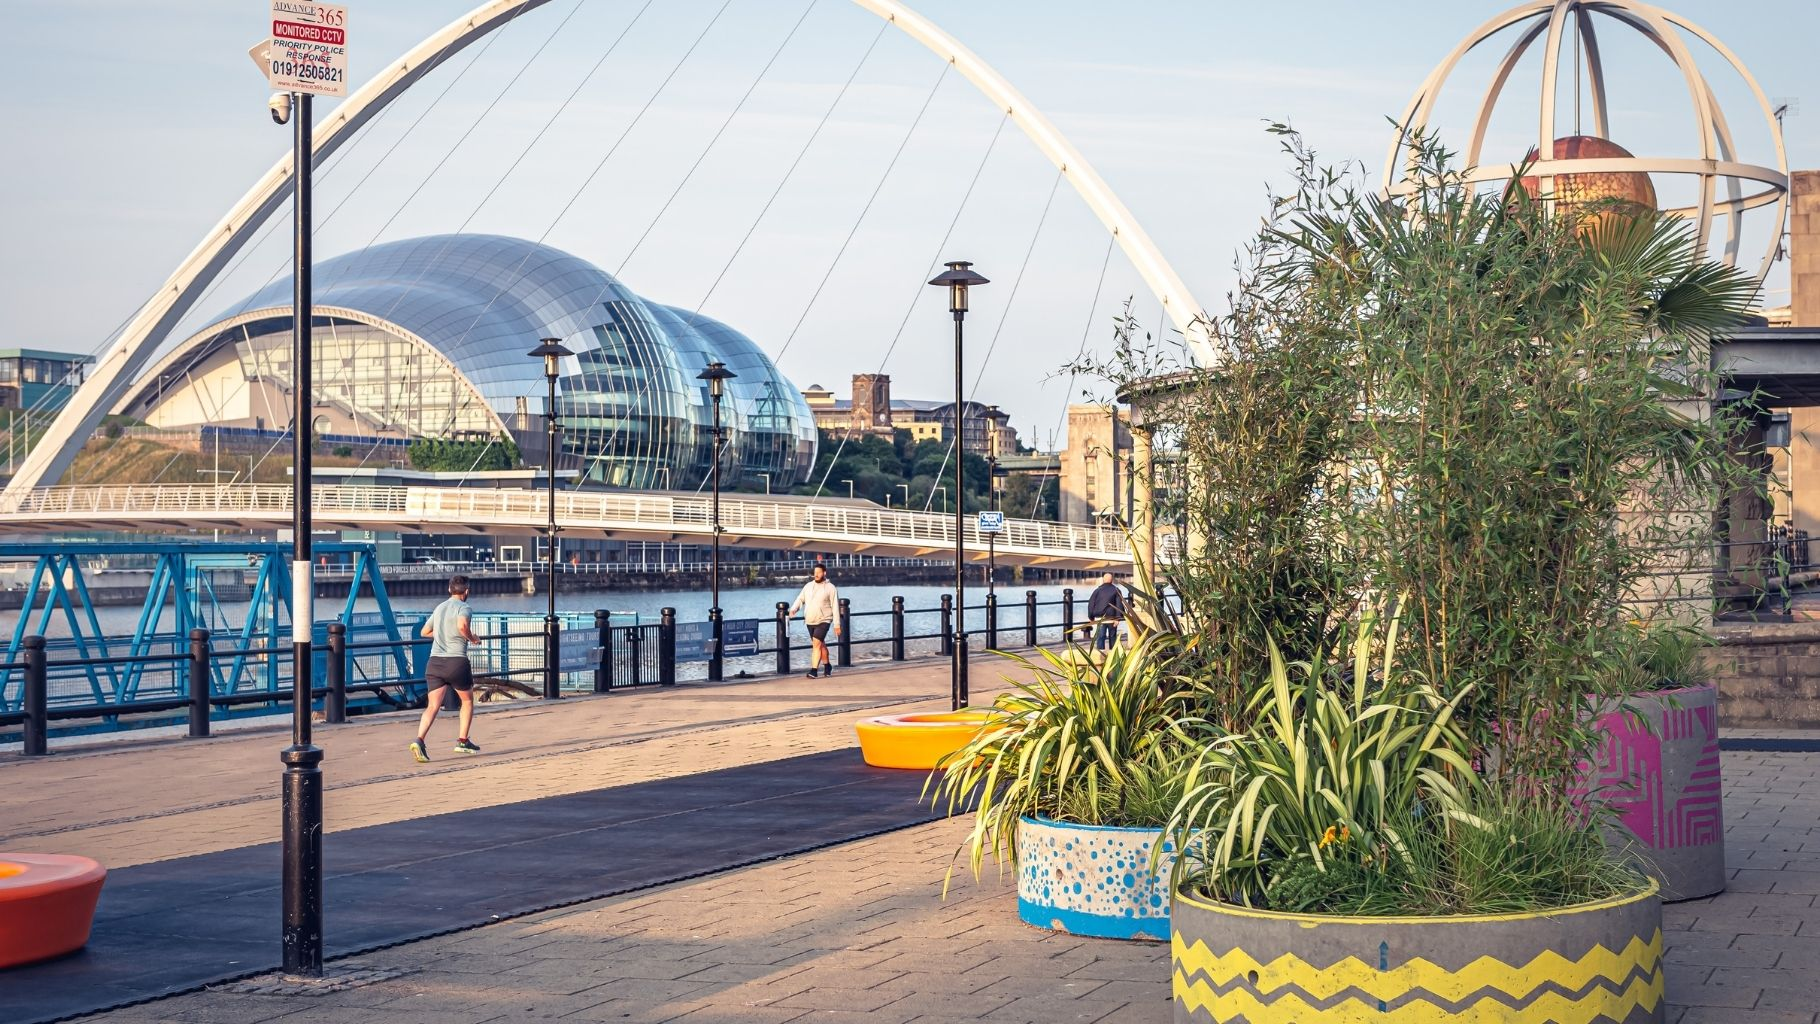 Summer in the City. Quayside